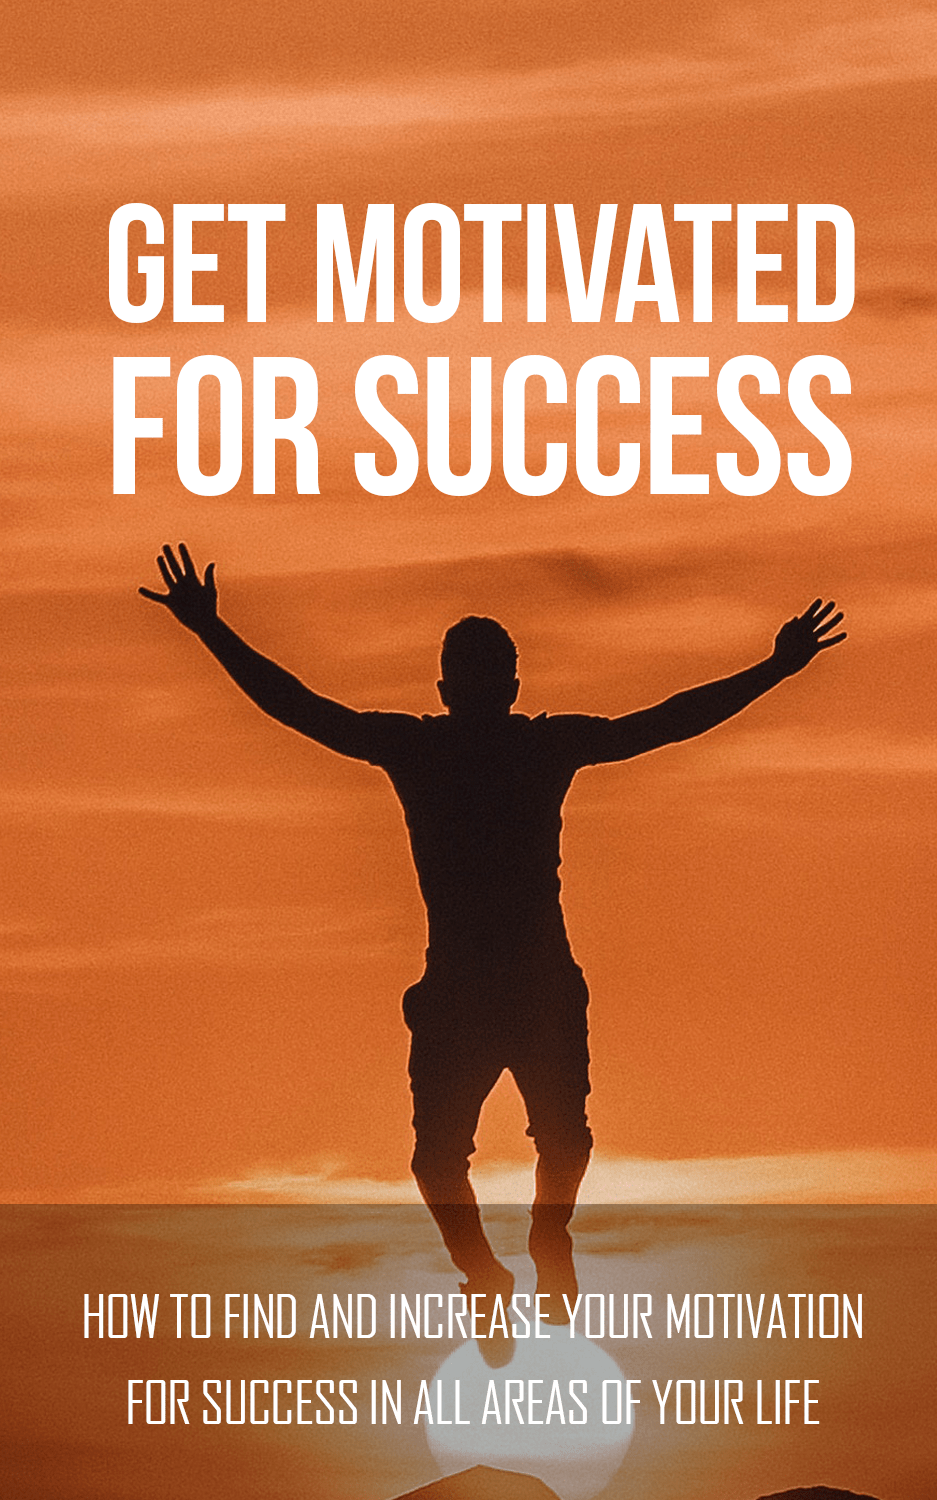 Get Motivated For Success (How To Find And Increase Your Motivation For Success In All Areas Of Your Life) Ebook's Ebook Image